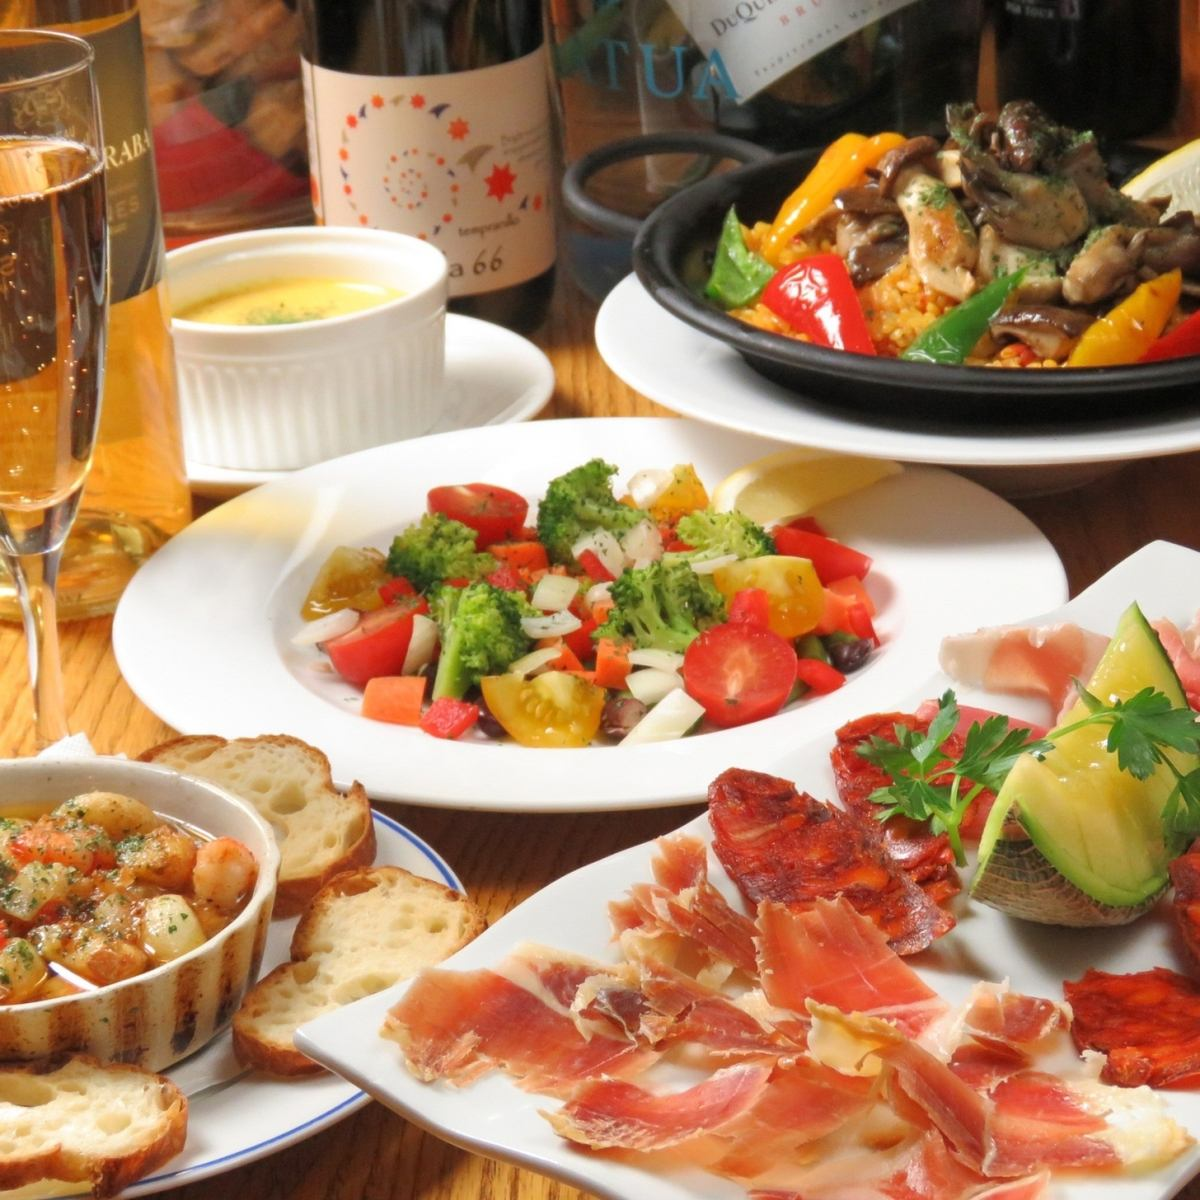 At home and Spanish restaurant ♪ that you can feel comfortable [spirited] with orange space and music